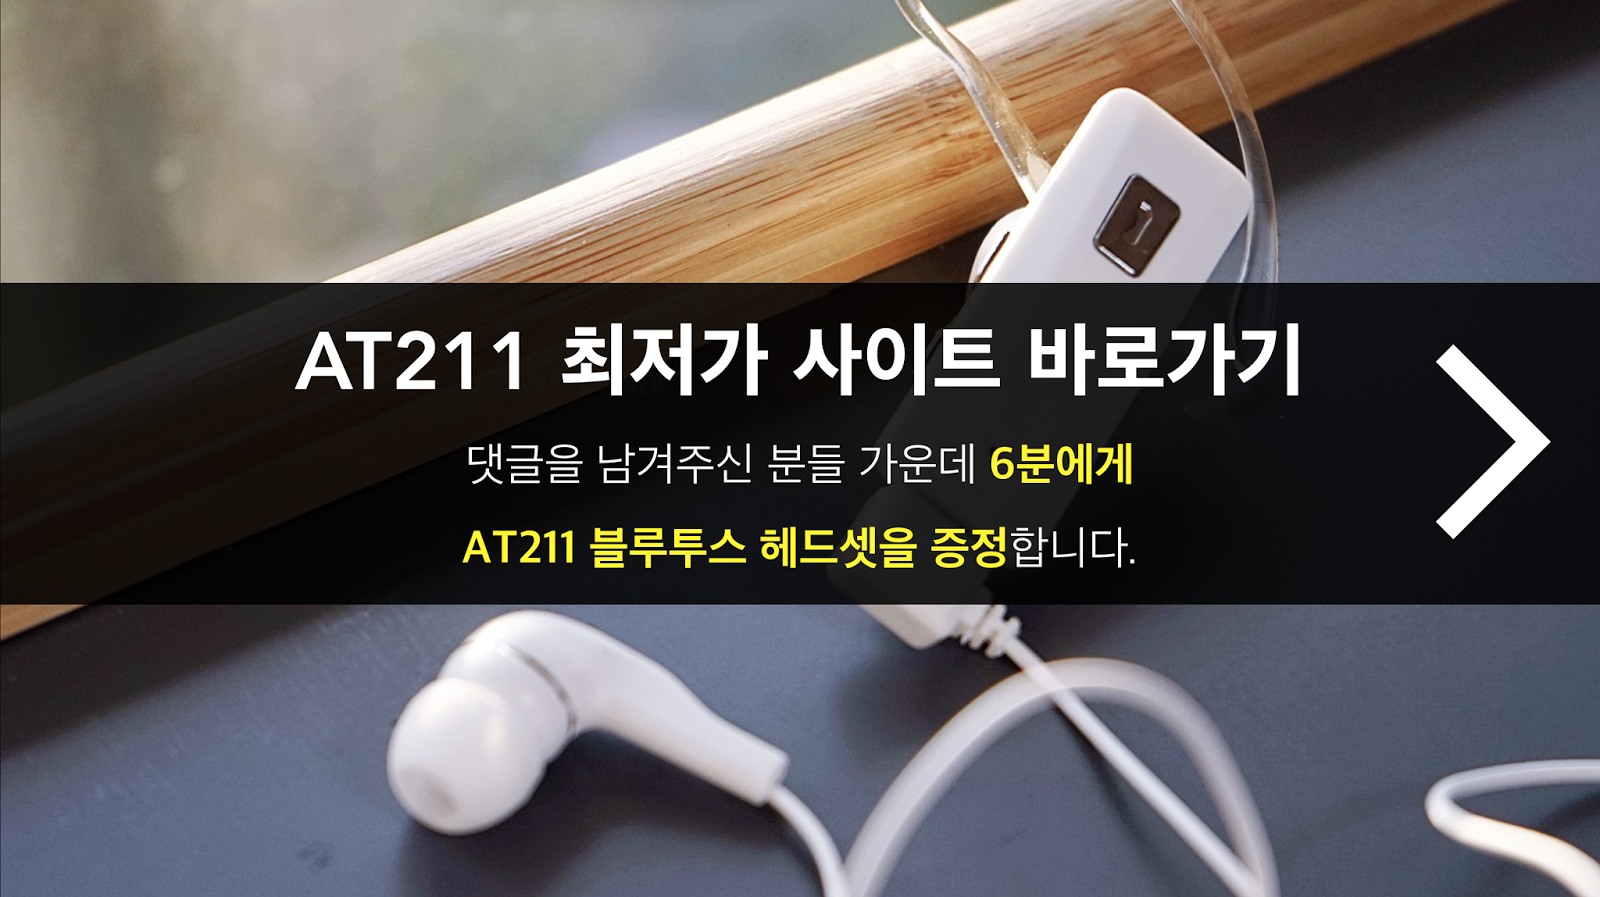 http://itempage3.auction.co.kr/DetailView.aspx?ItemNo=B242908259&frm3=V2